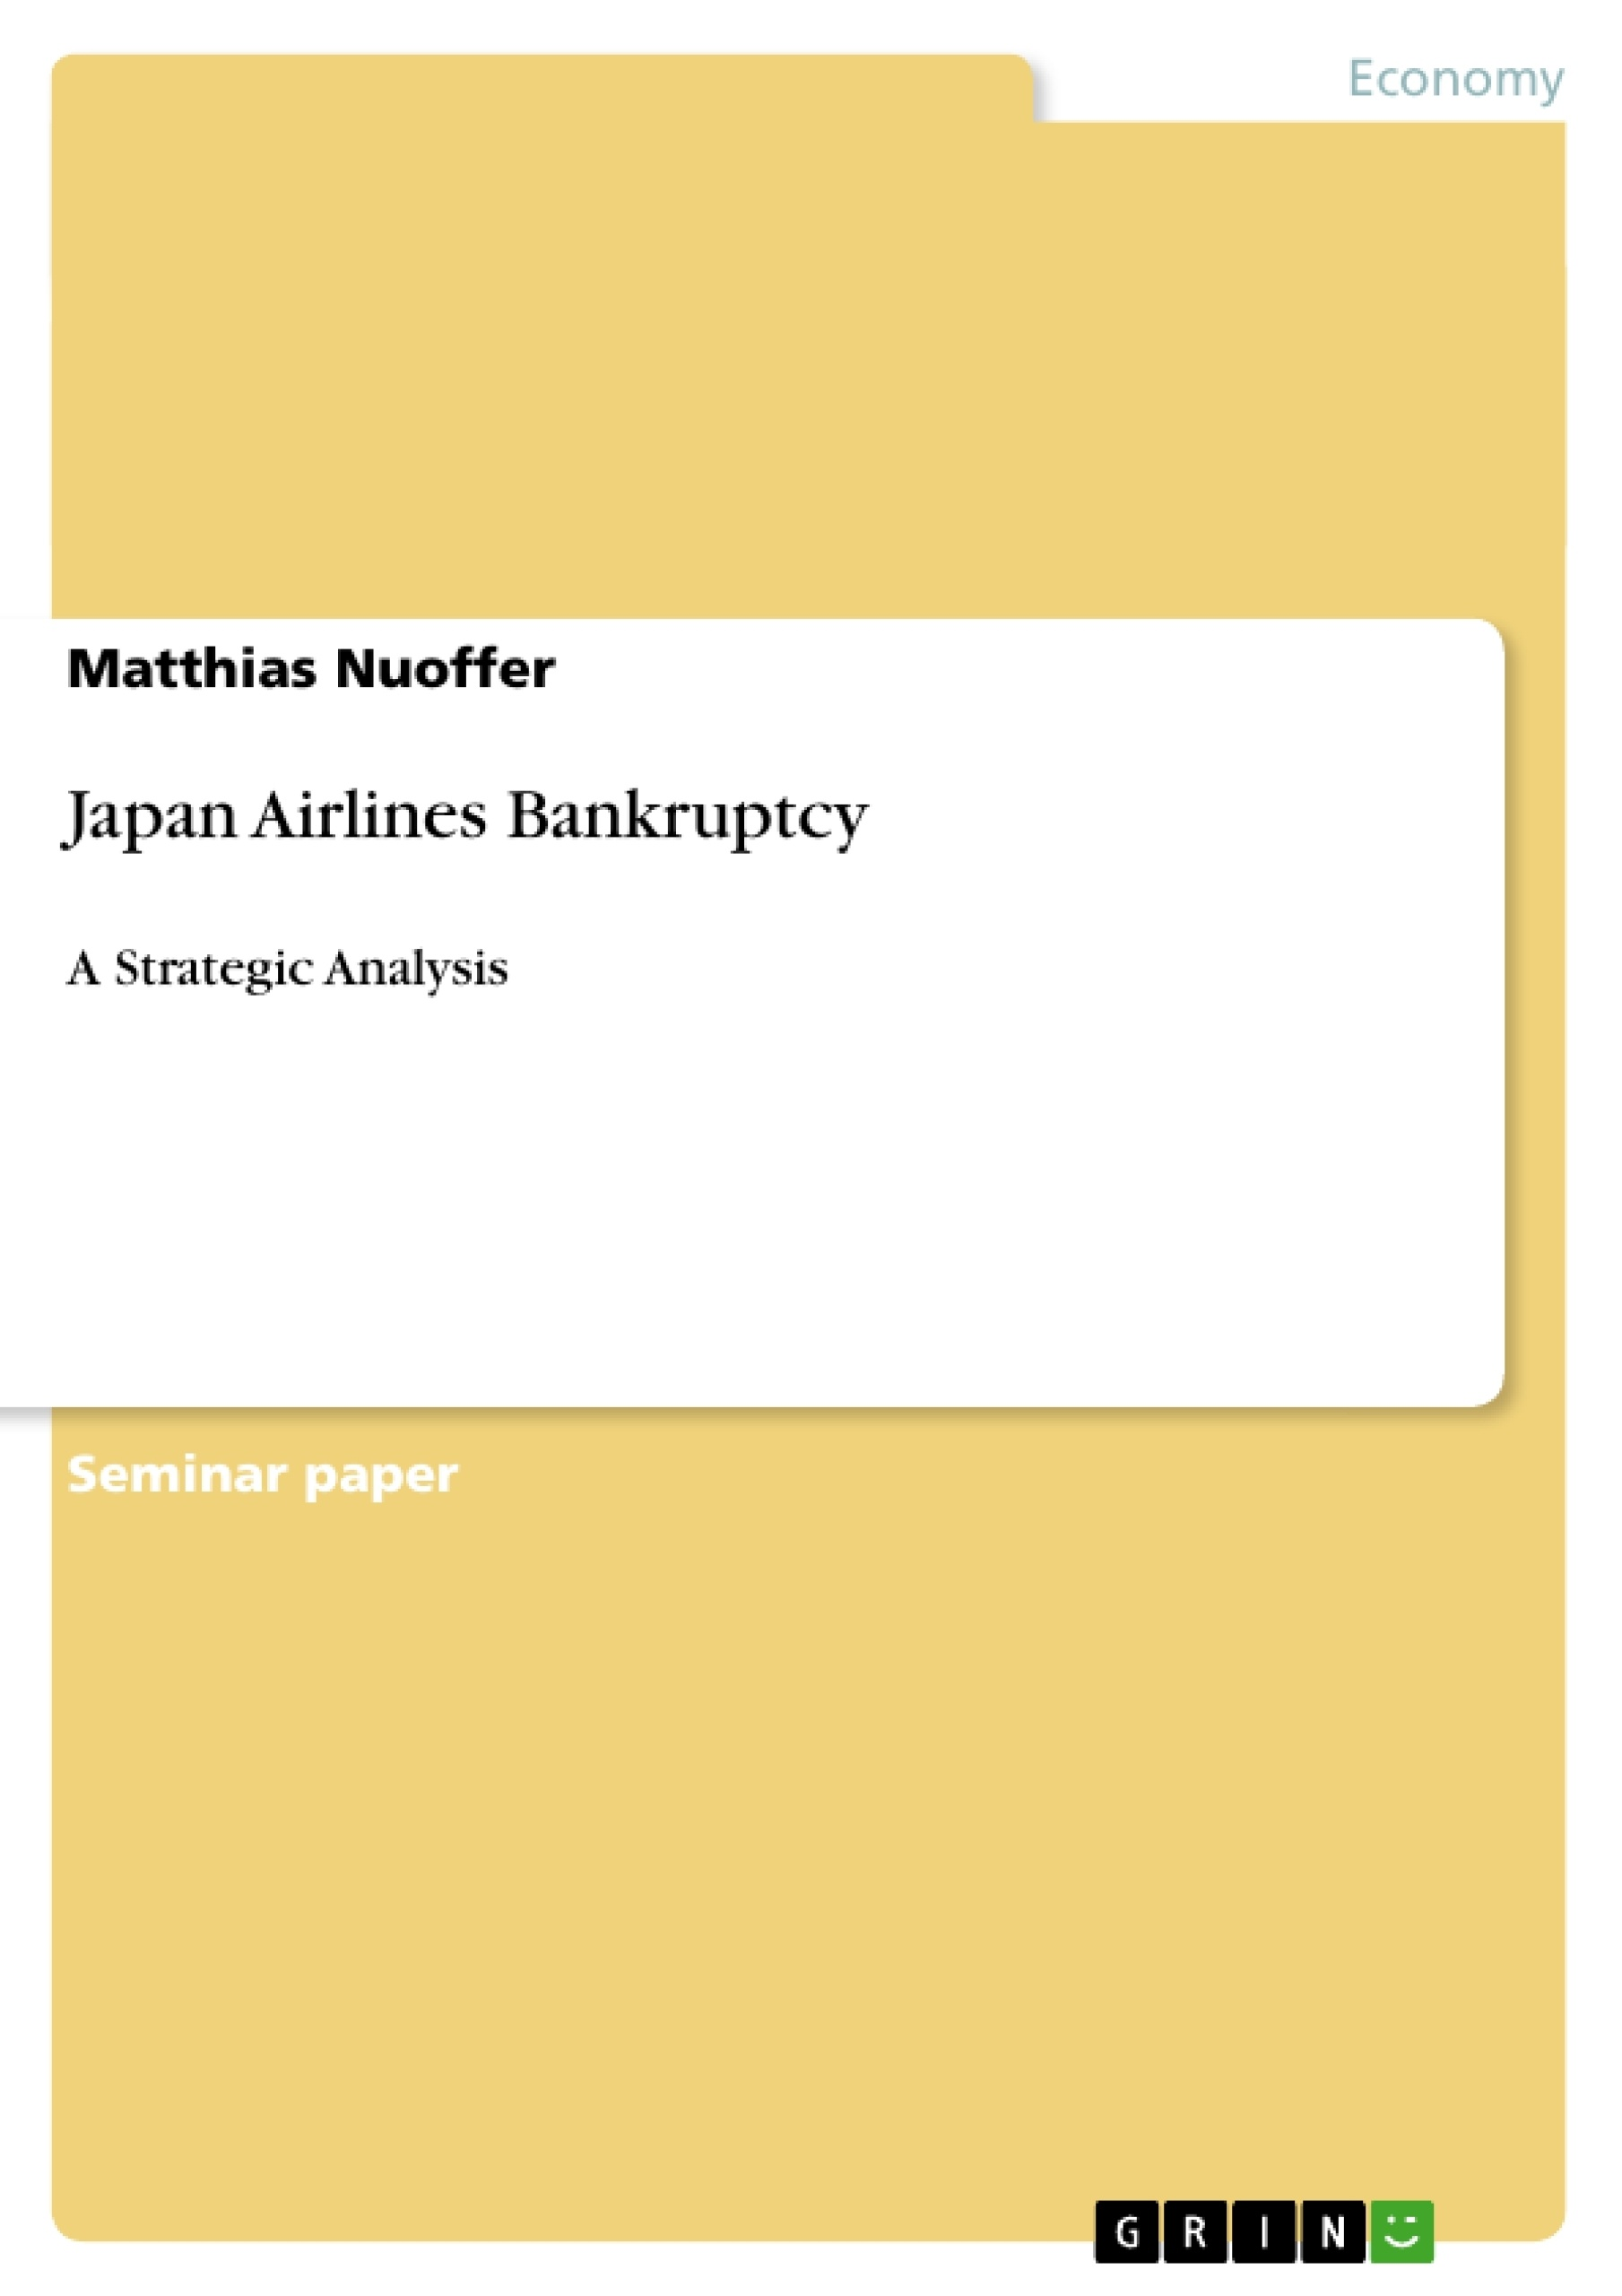 Title: Japan Airlines Bankruptcy